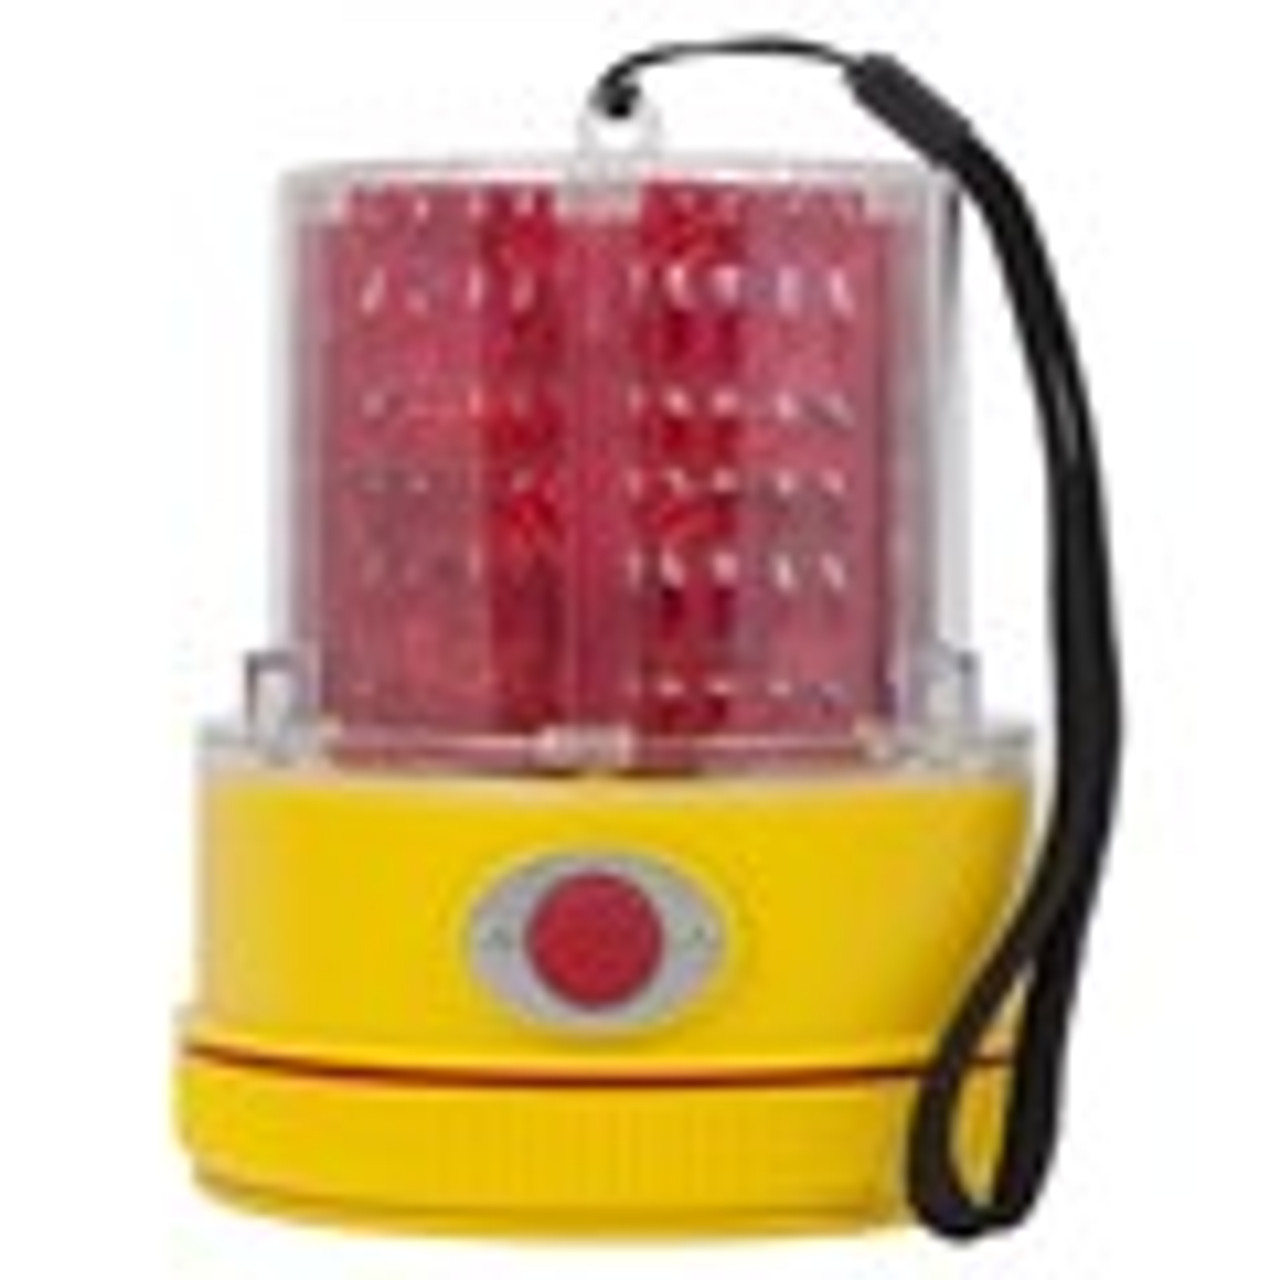 98rv18 740r Peterson Usa Red Led Strobe Beacon Battery Operated Magnetic Mount Red Lens 740r Ultimate Led